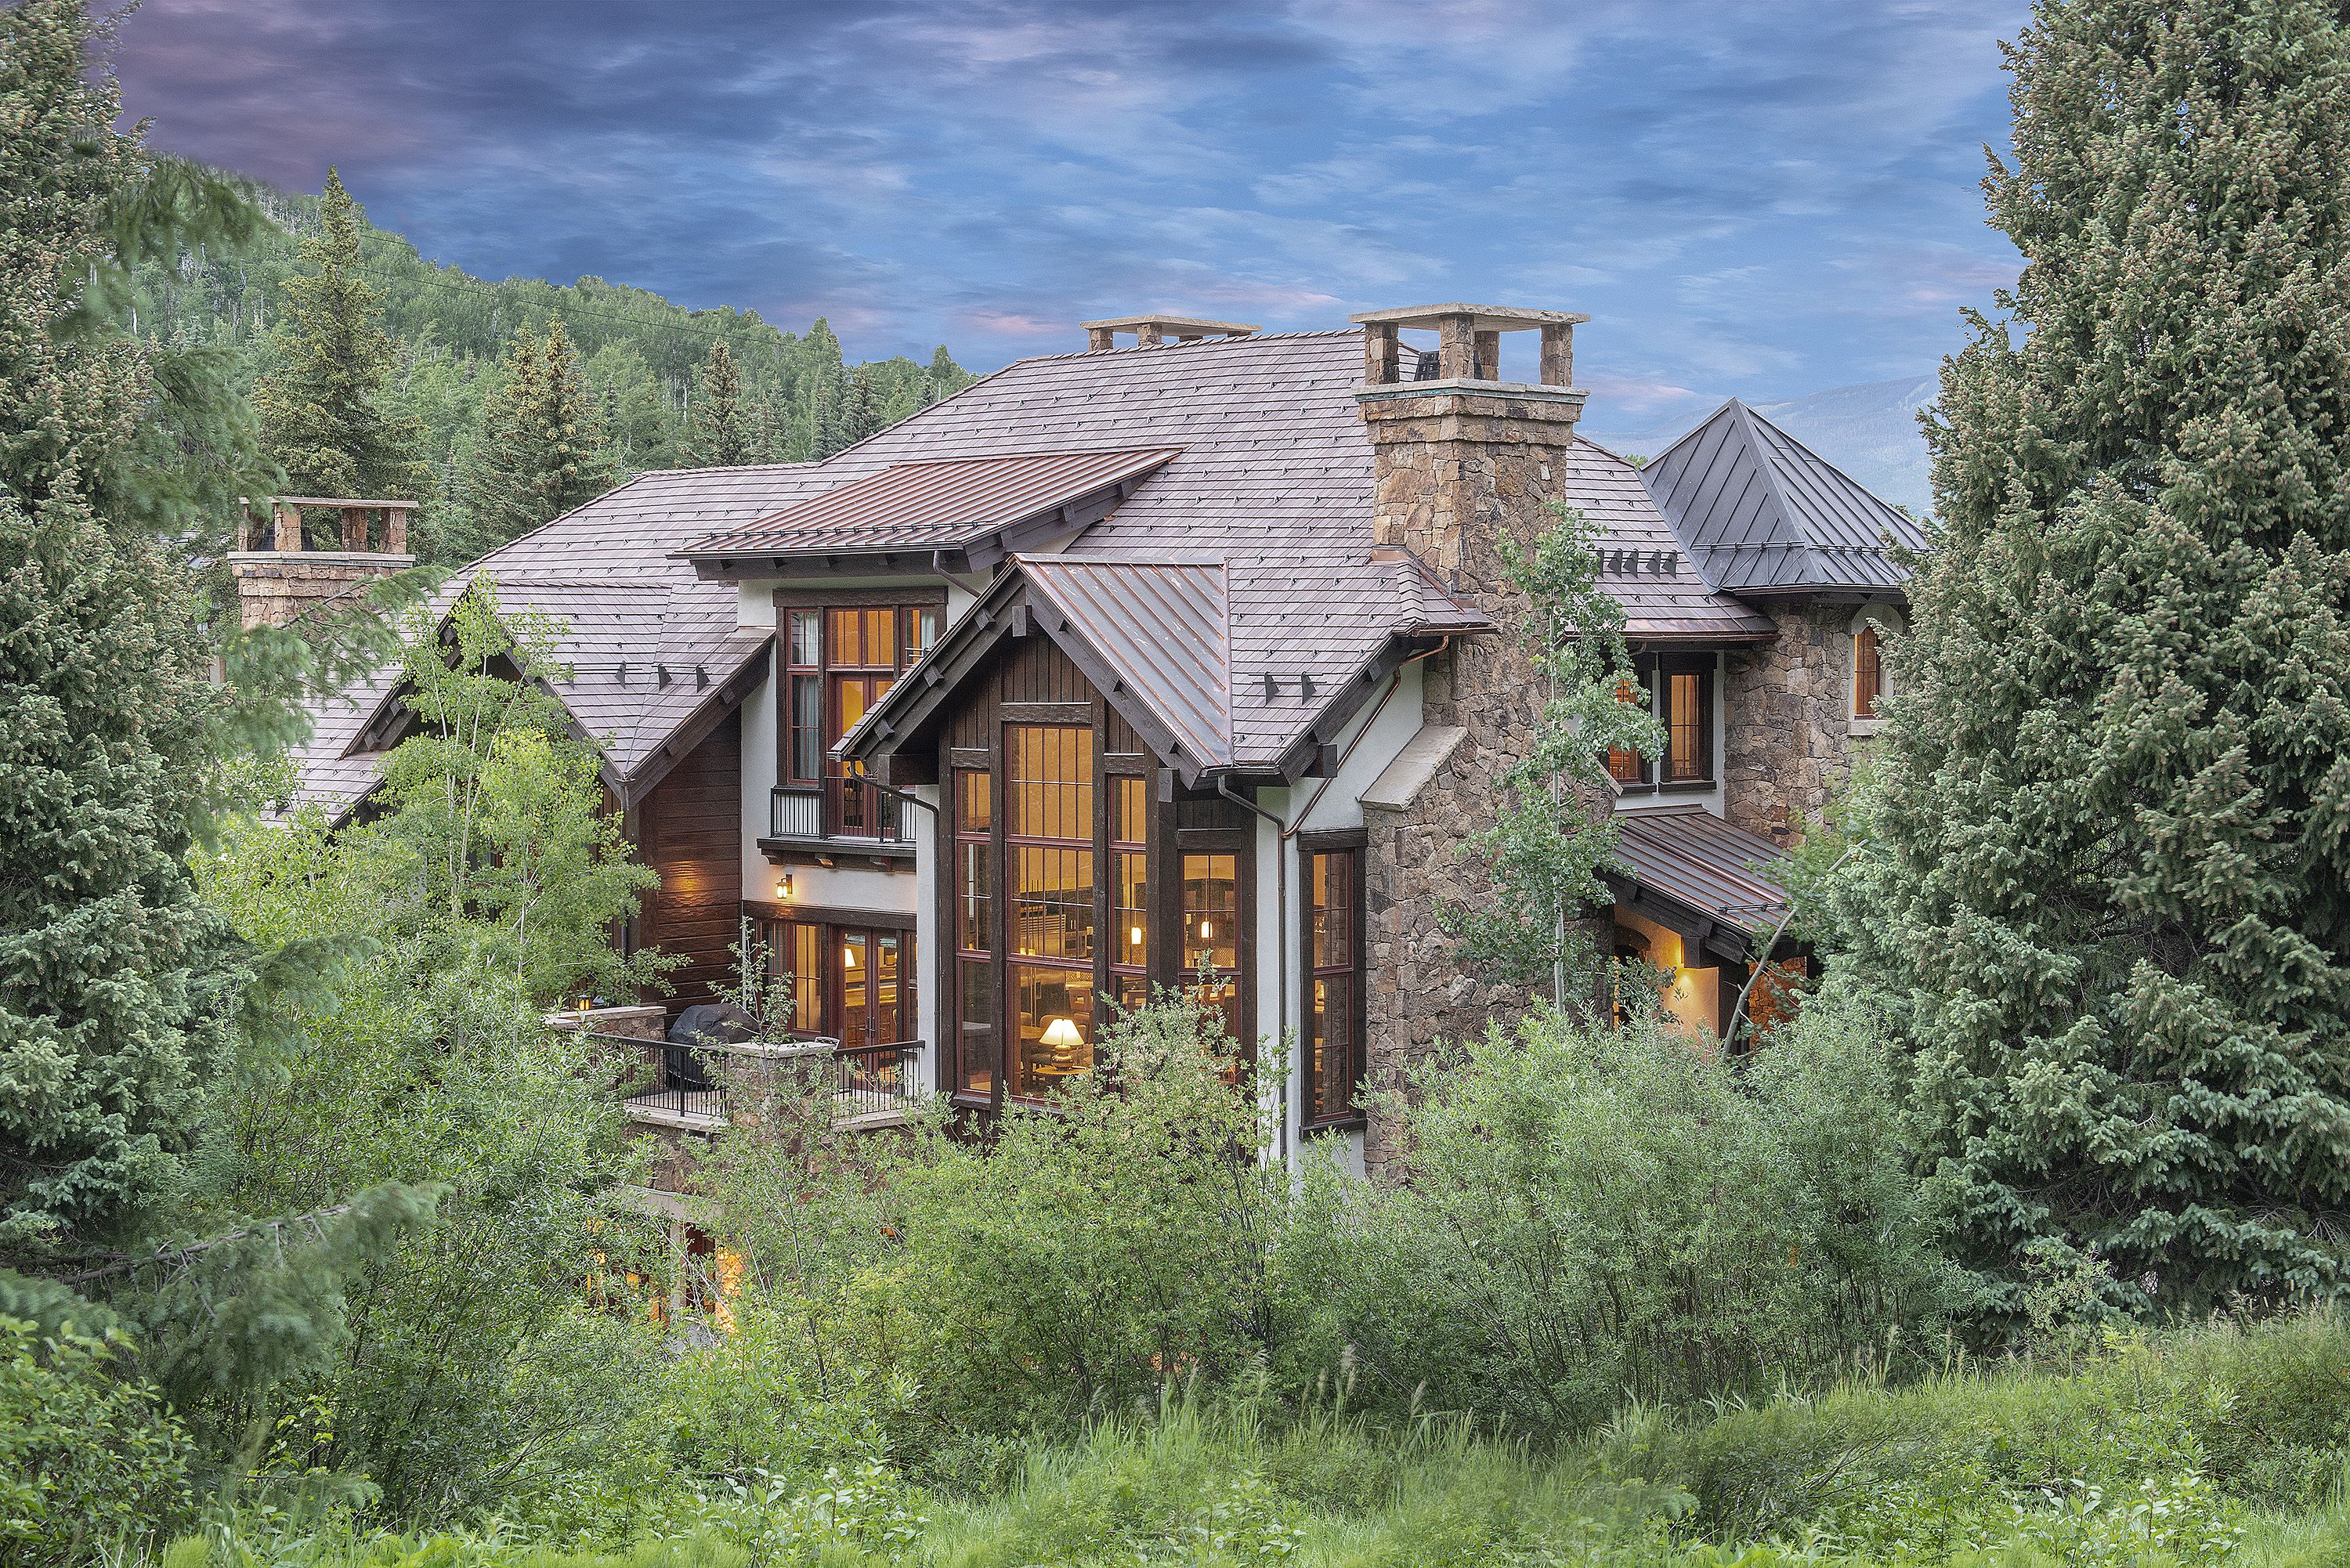 171 Village Walk Beaver Creek, CO 81621